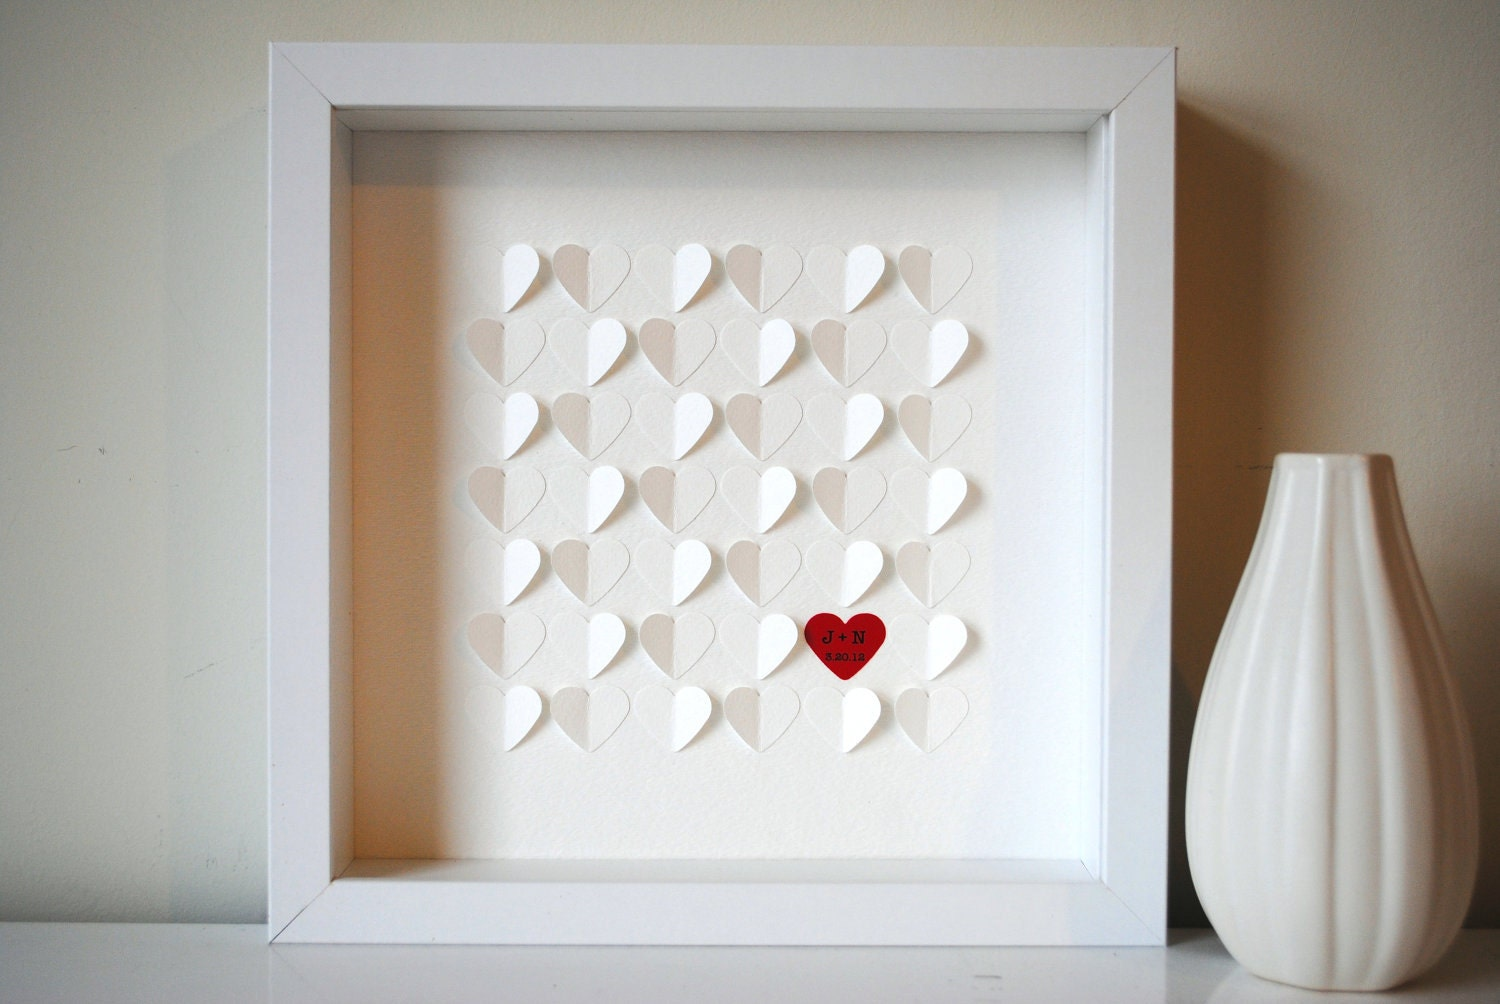 Wedding Guest Book Alternative, Personalized 3D Wedding Hearts - XS guest book (includes frame, instruction card and one pen)